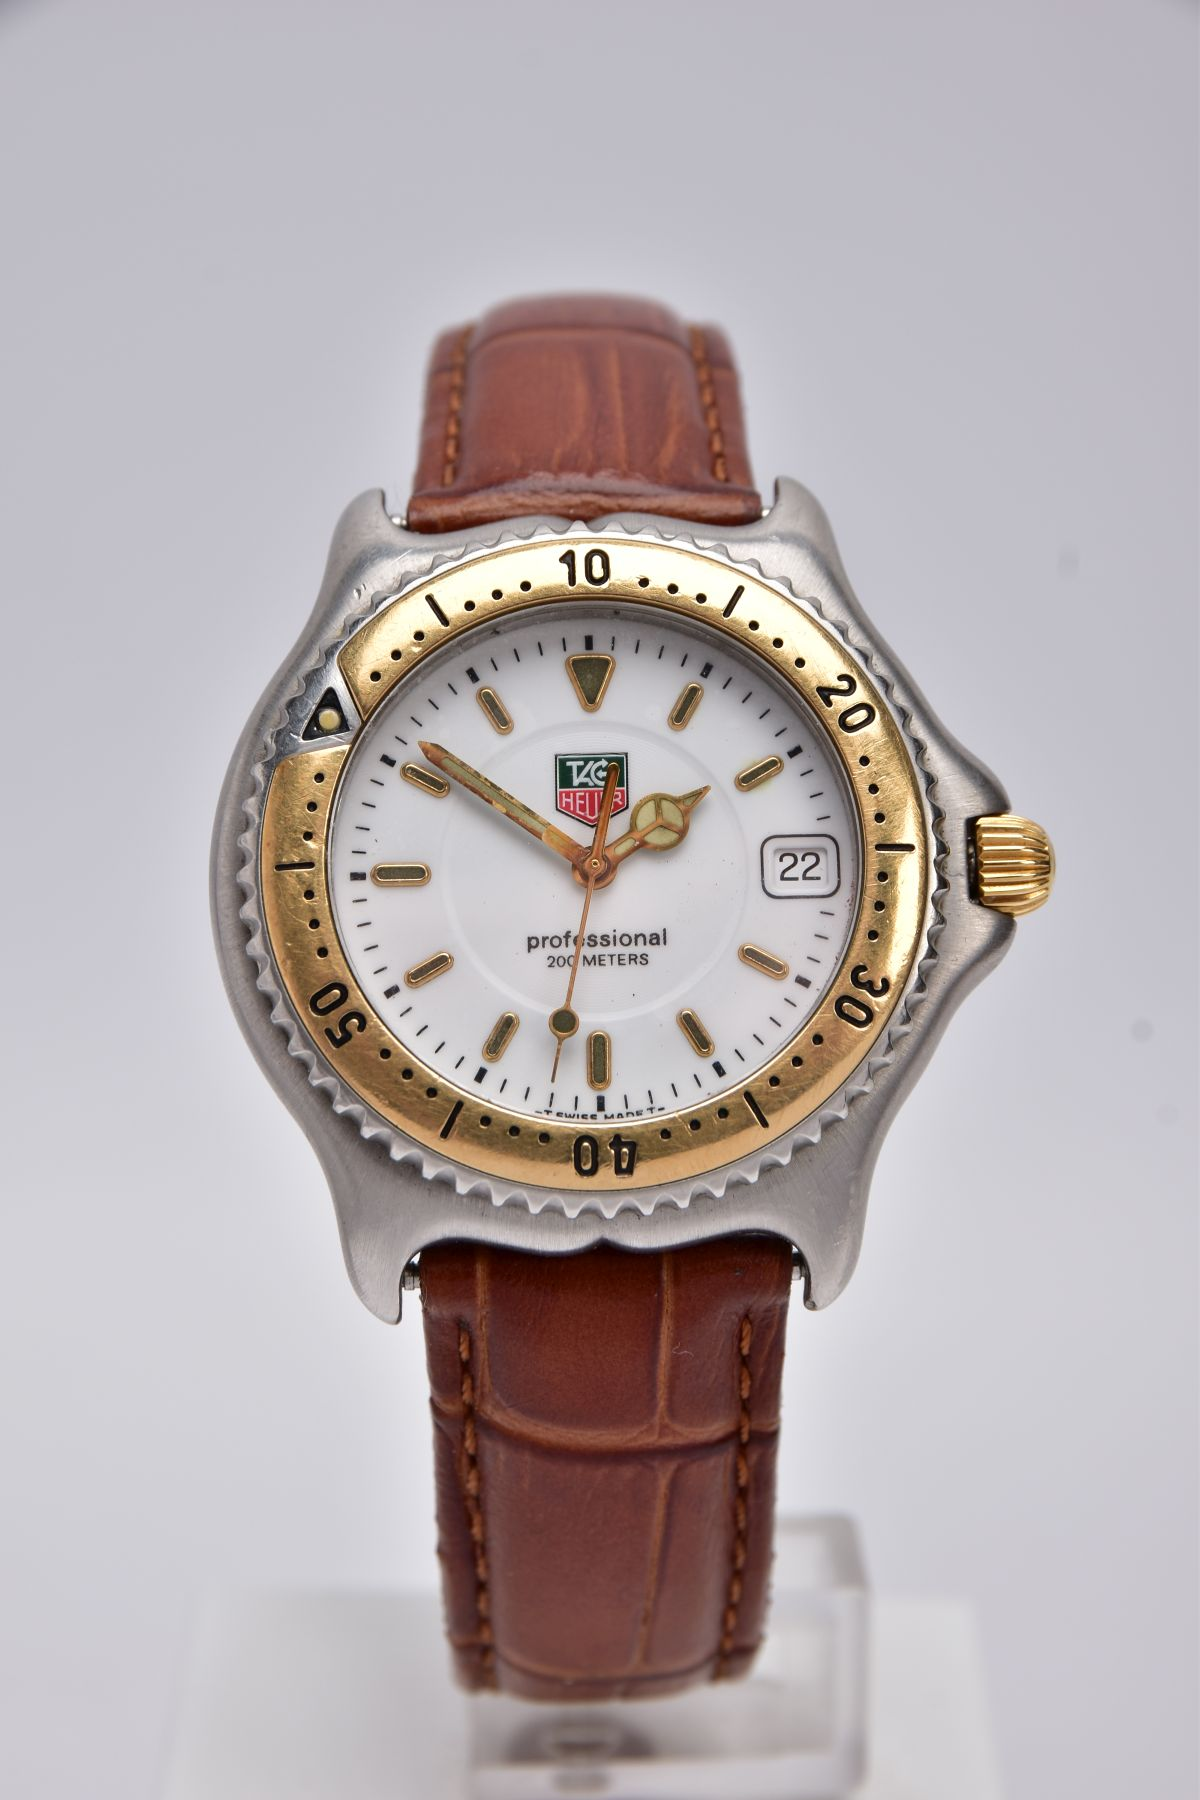 A GENTS 'TAG HEUER' WRISTWATCH, round white dial signed 'Tag Heuer, Professional 200 meters',